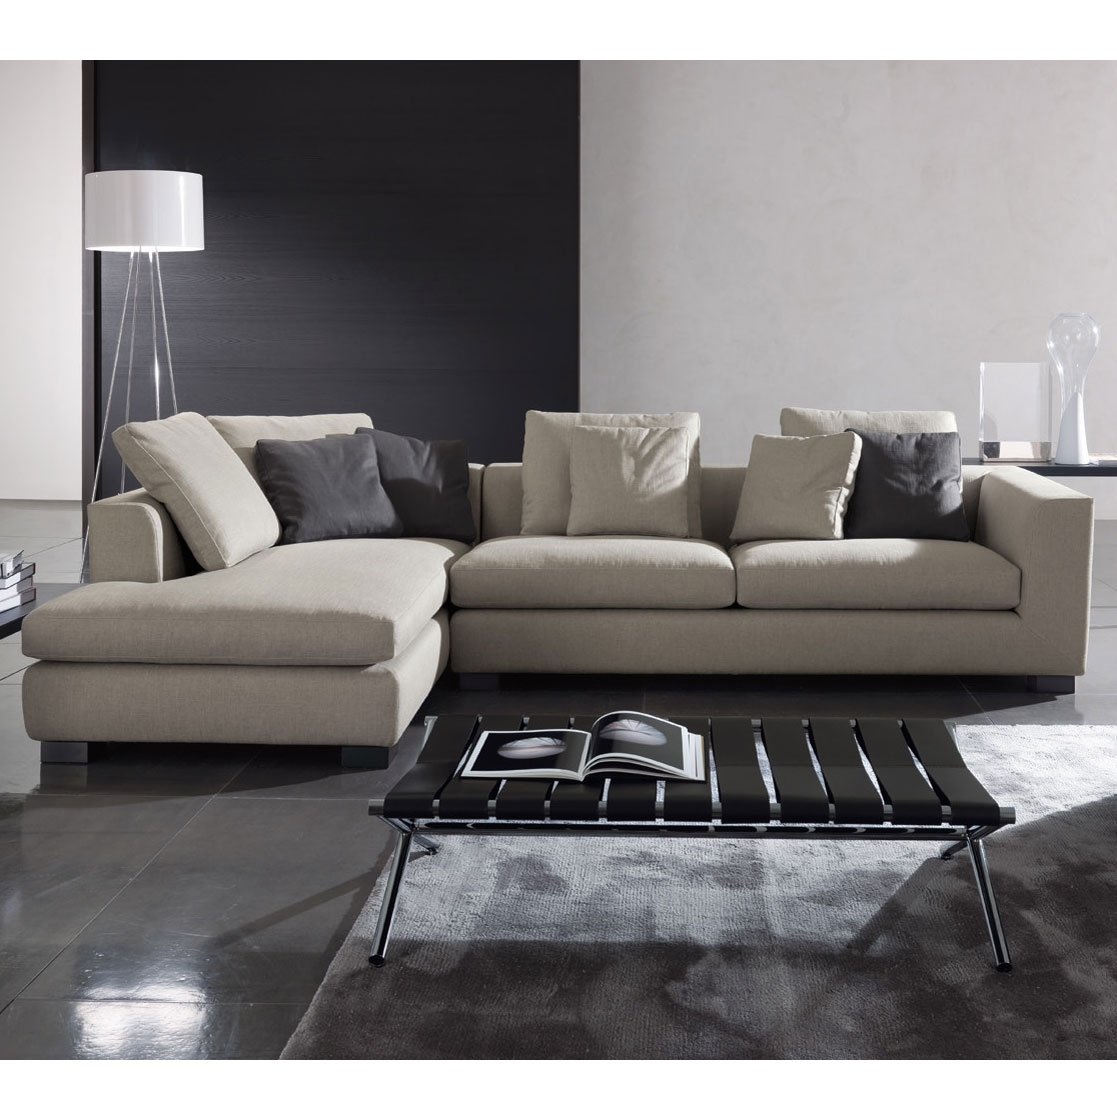 Living Room Sofa Modern Sectional Sofas Nyc Amazing Cheap Latest Mid Throughout Nyc Sectional Sofas (View 7 of 10)